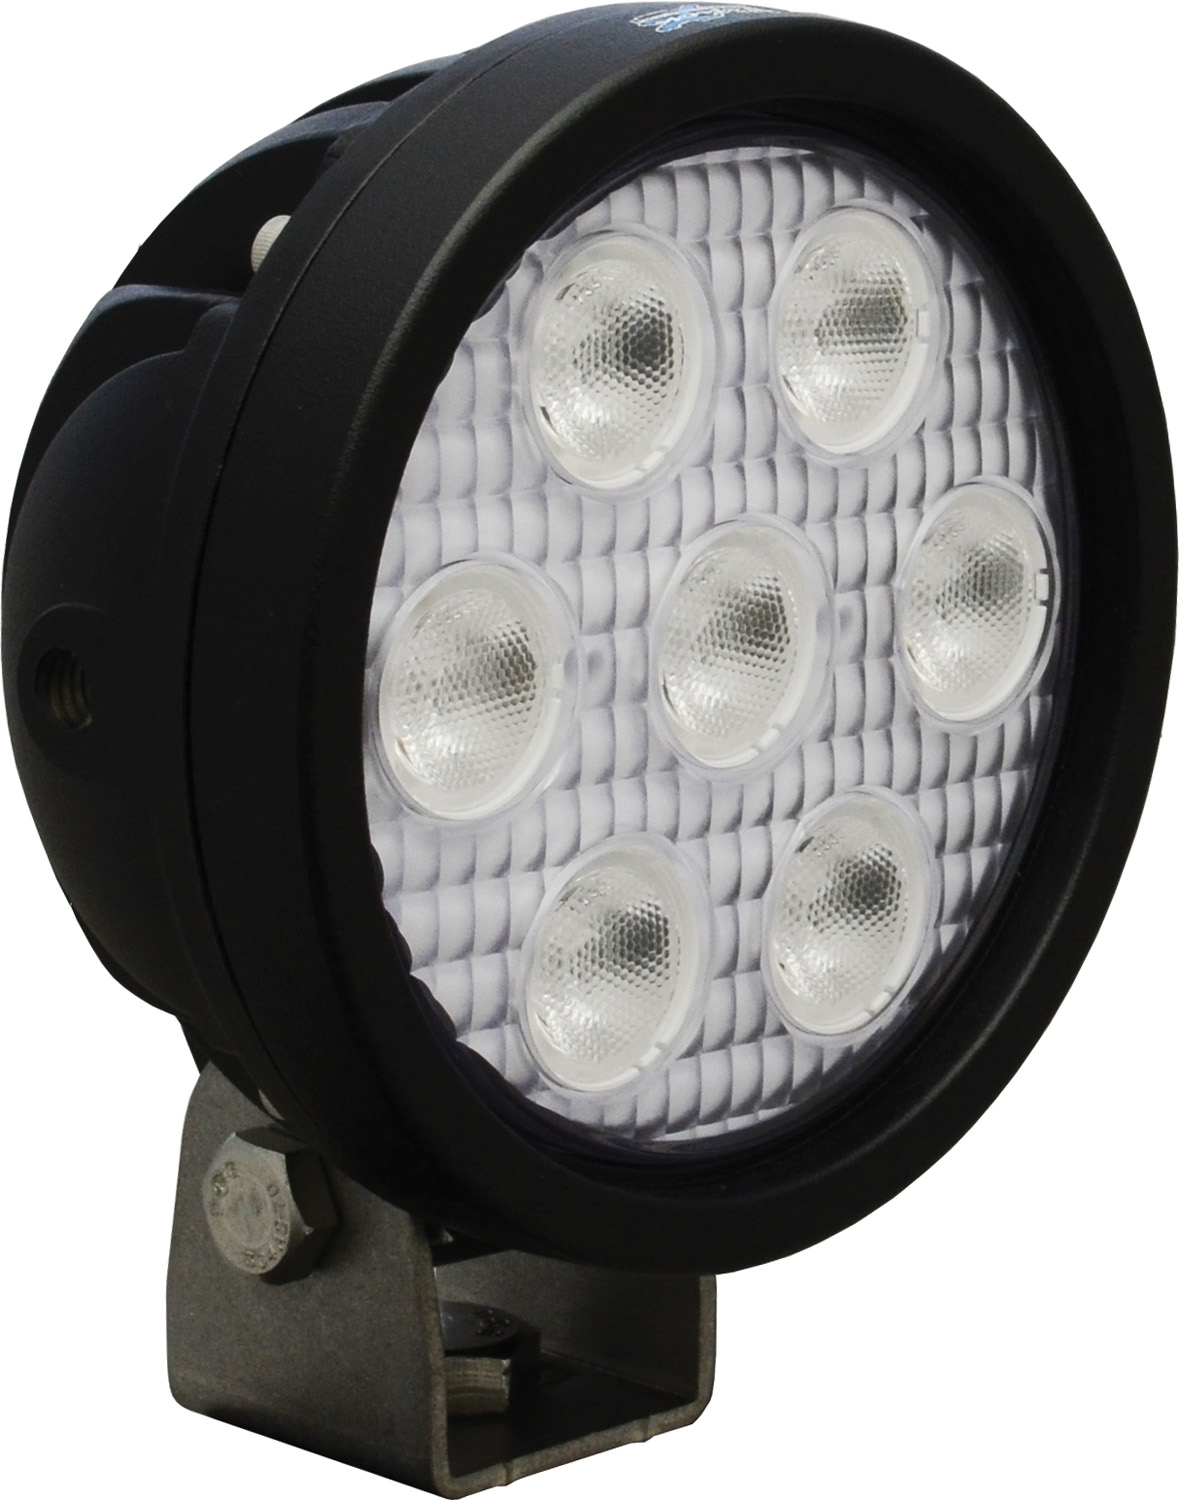 4 inch ROUND UTILITY MARKET BLACK 7 3W BLUE LED'S 40ç WIDE